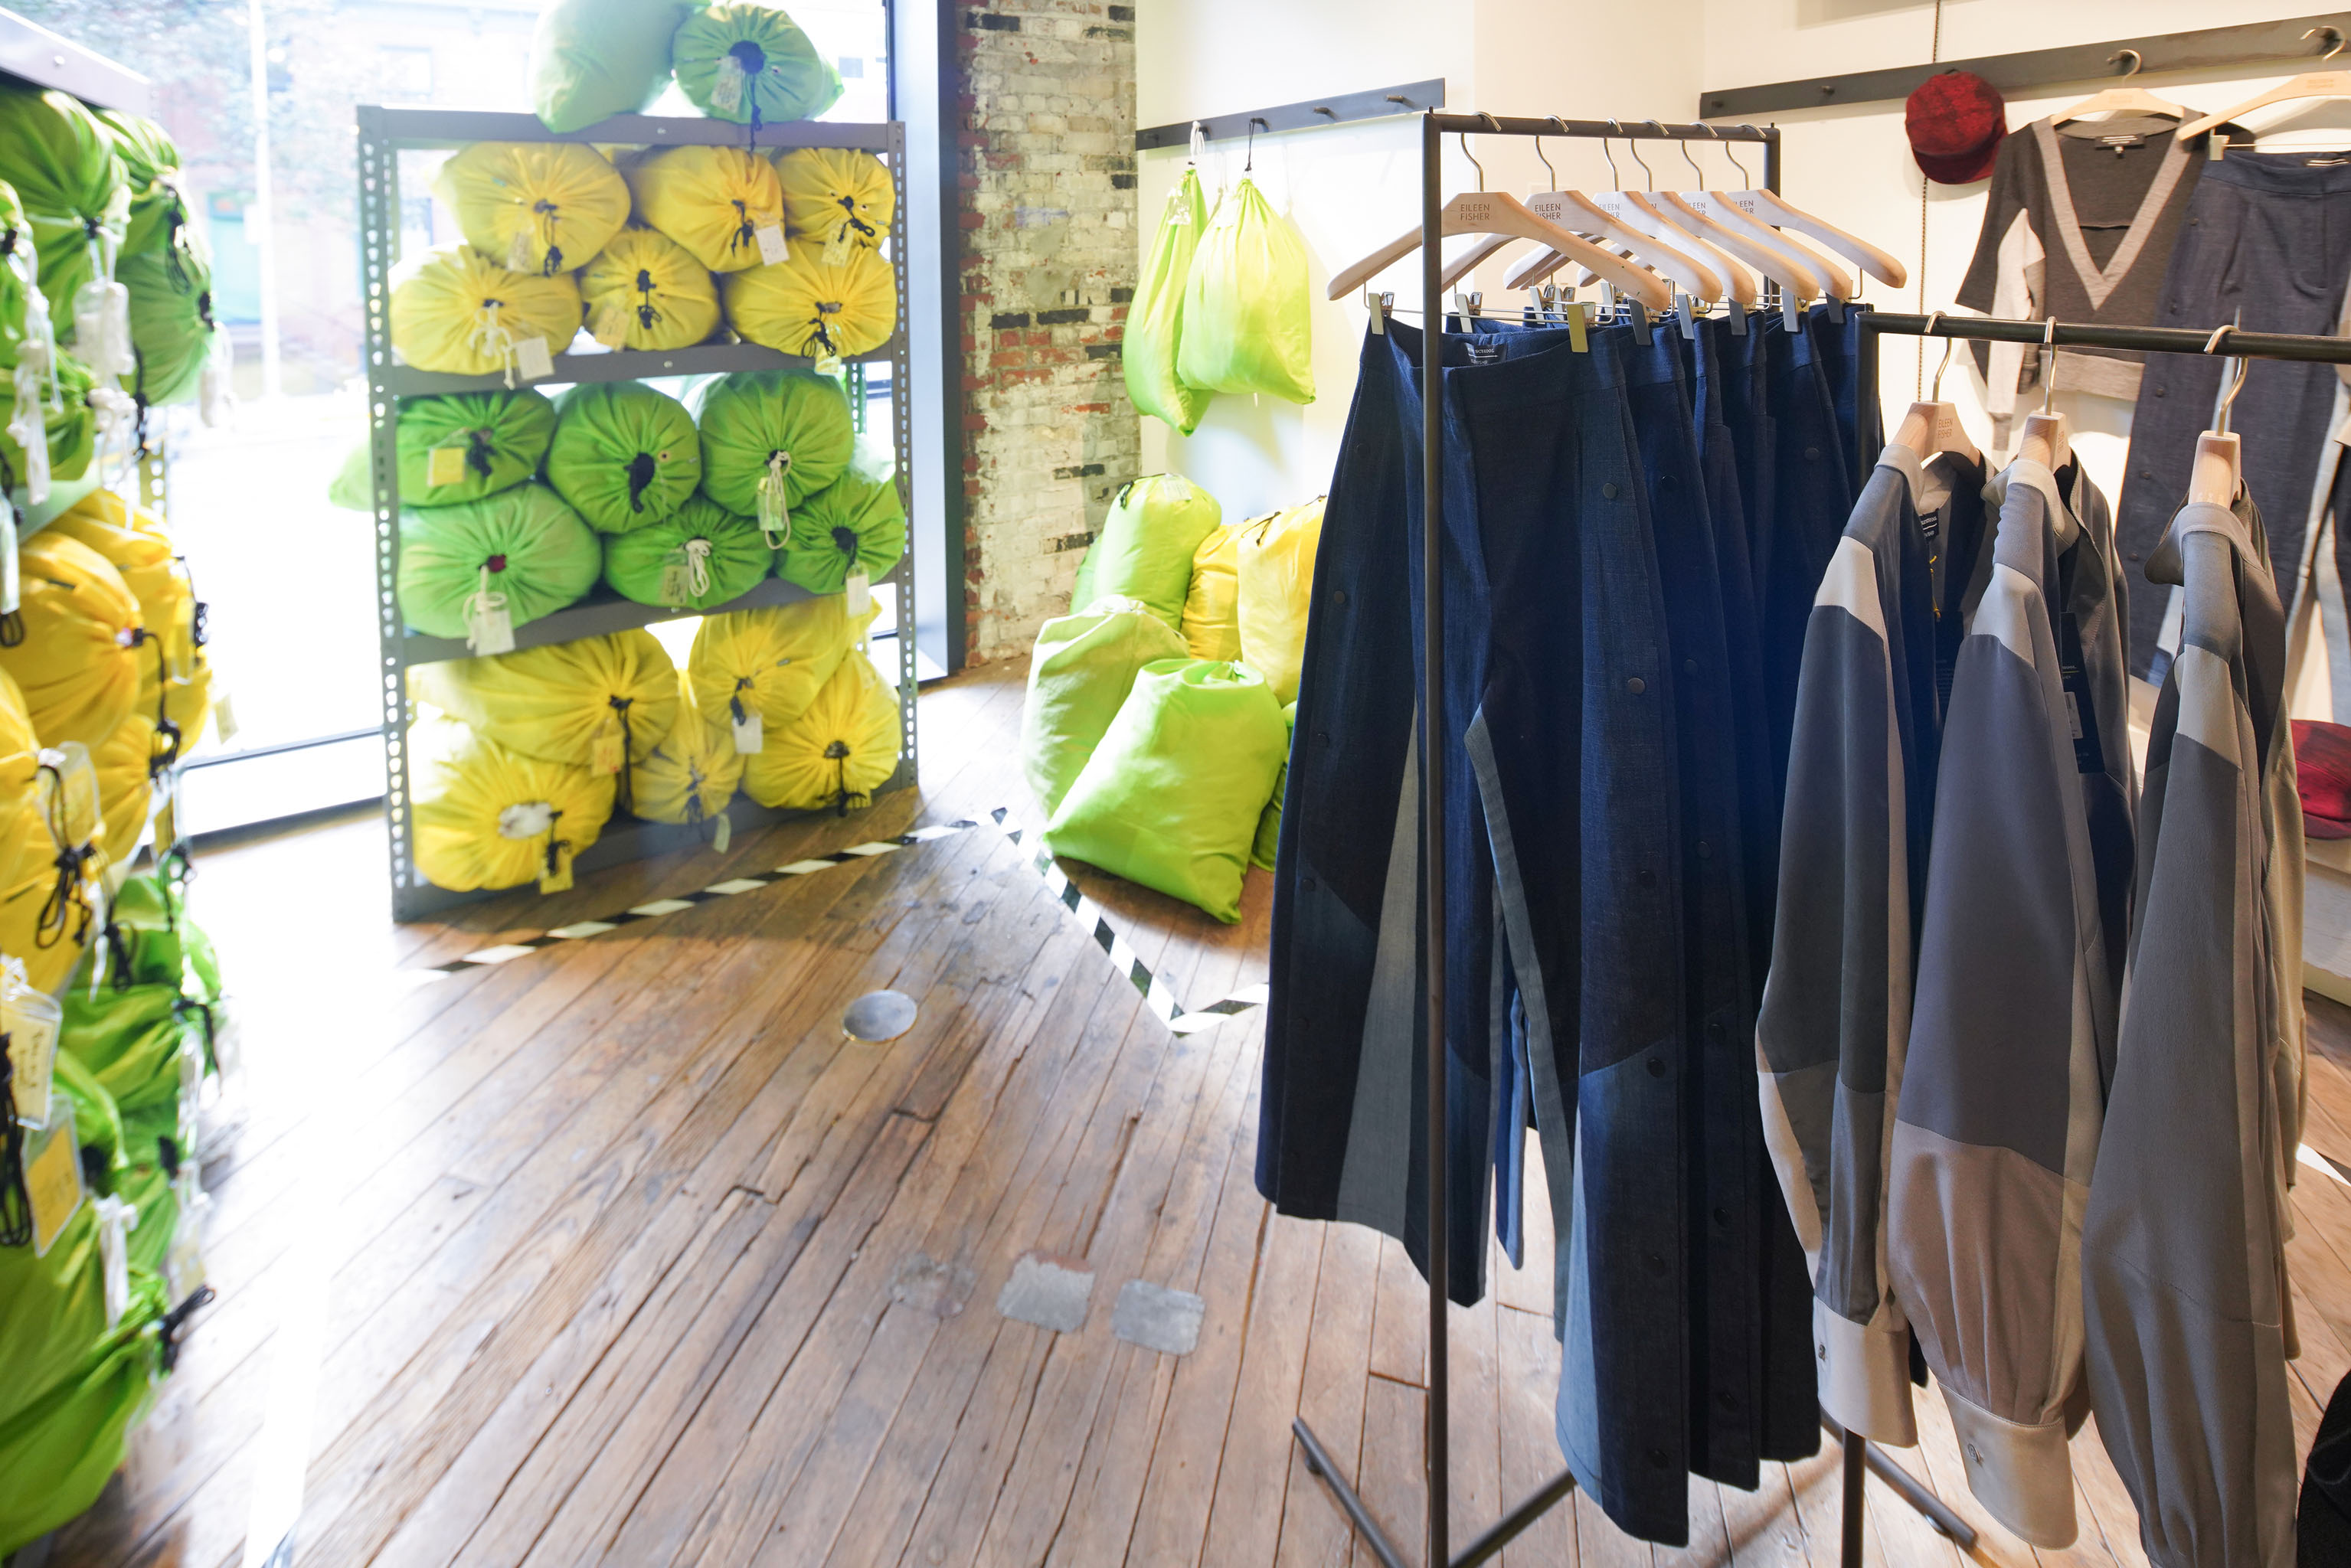 A view of the Public School x Eileen Fisher area at Making Space in Brooklyn.